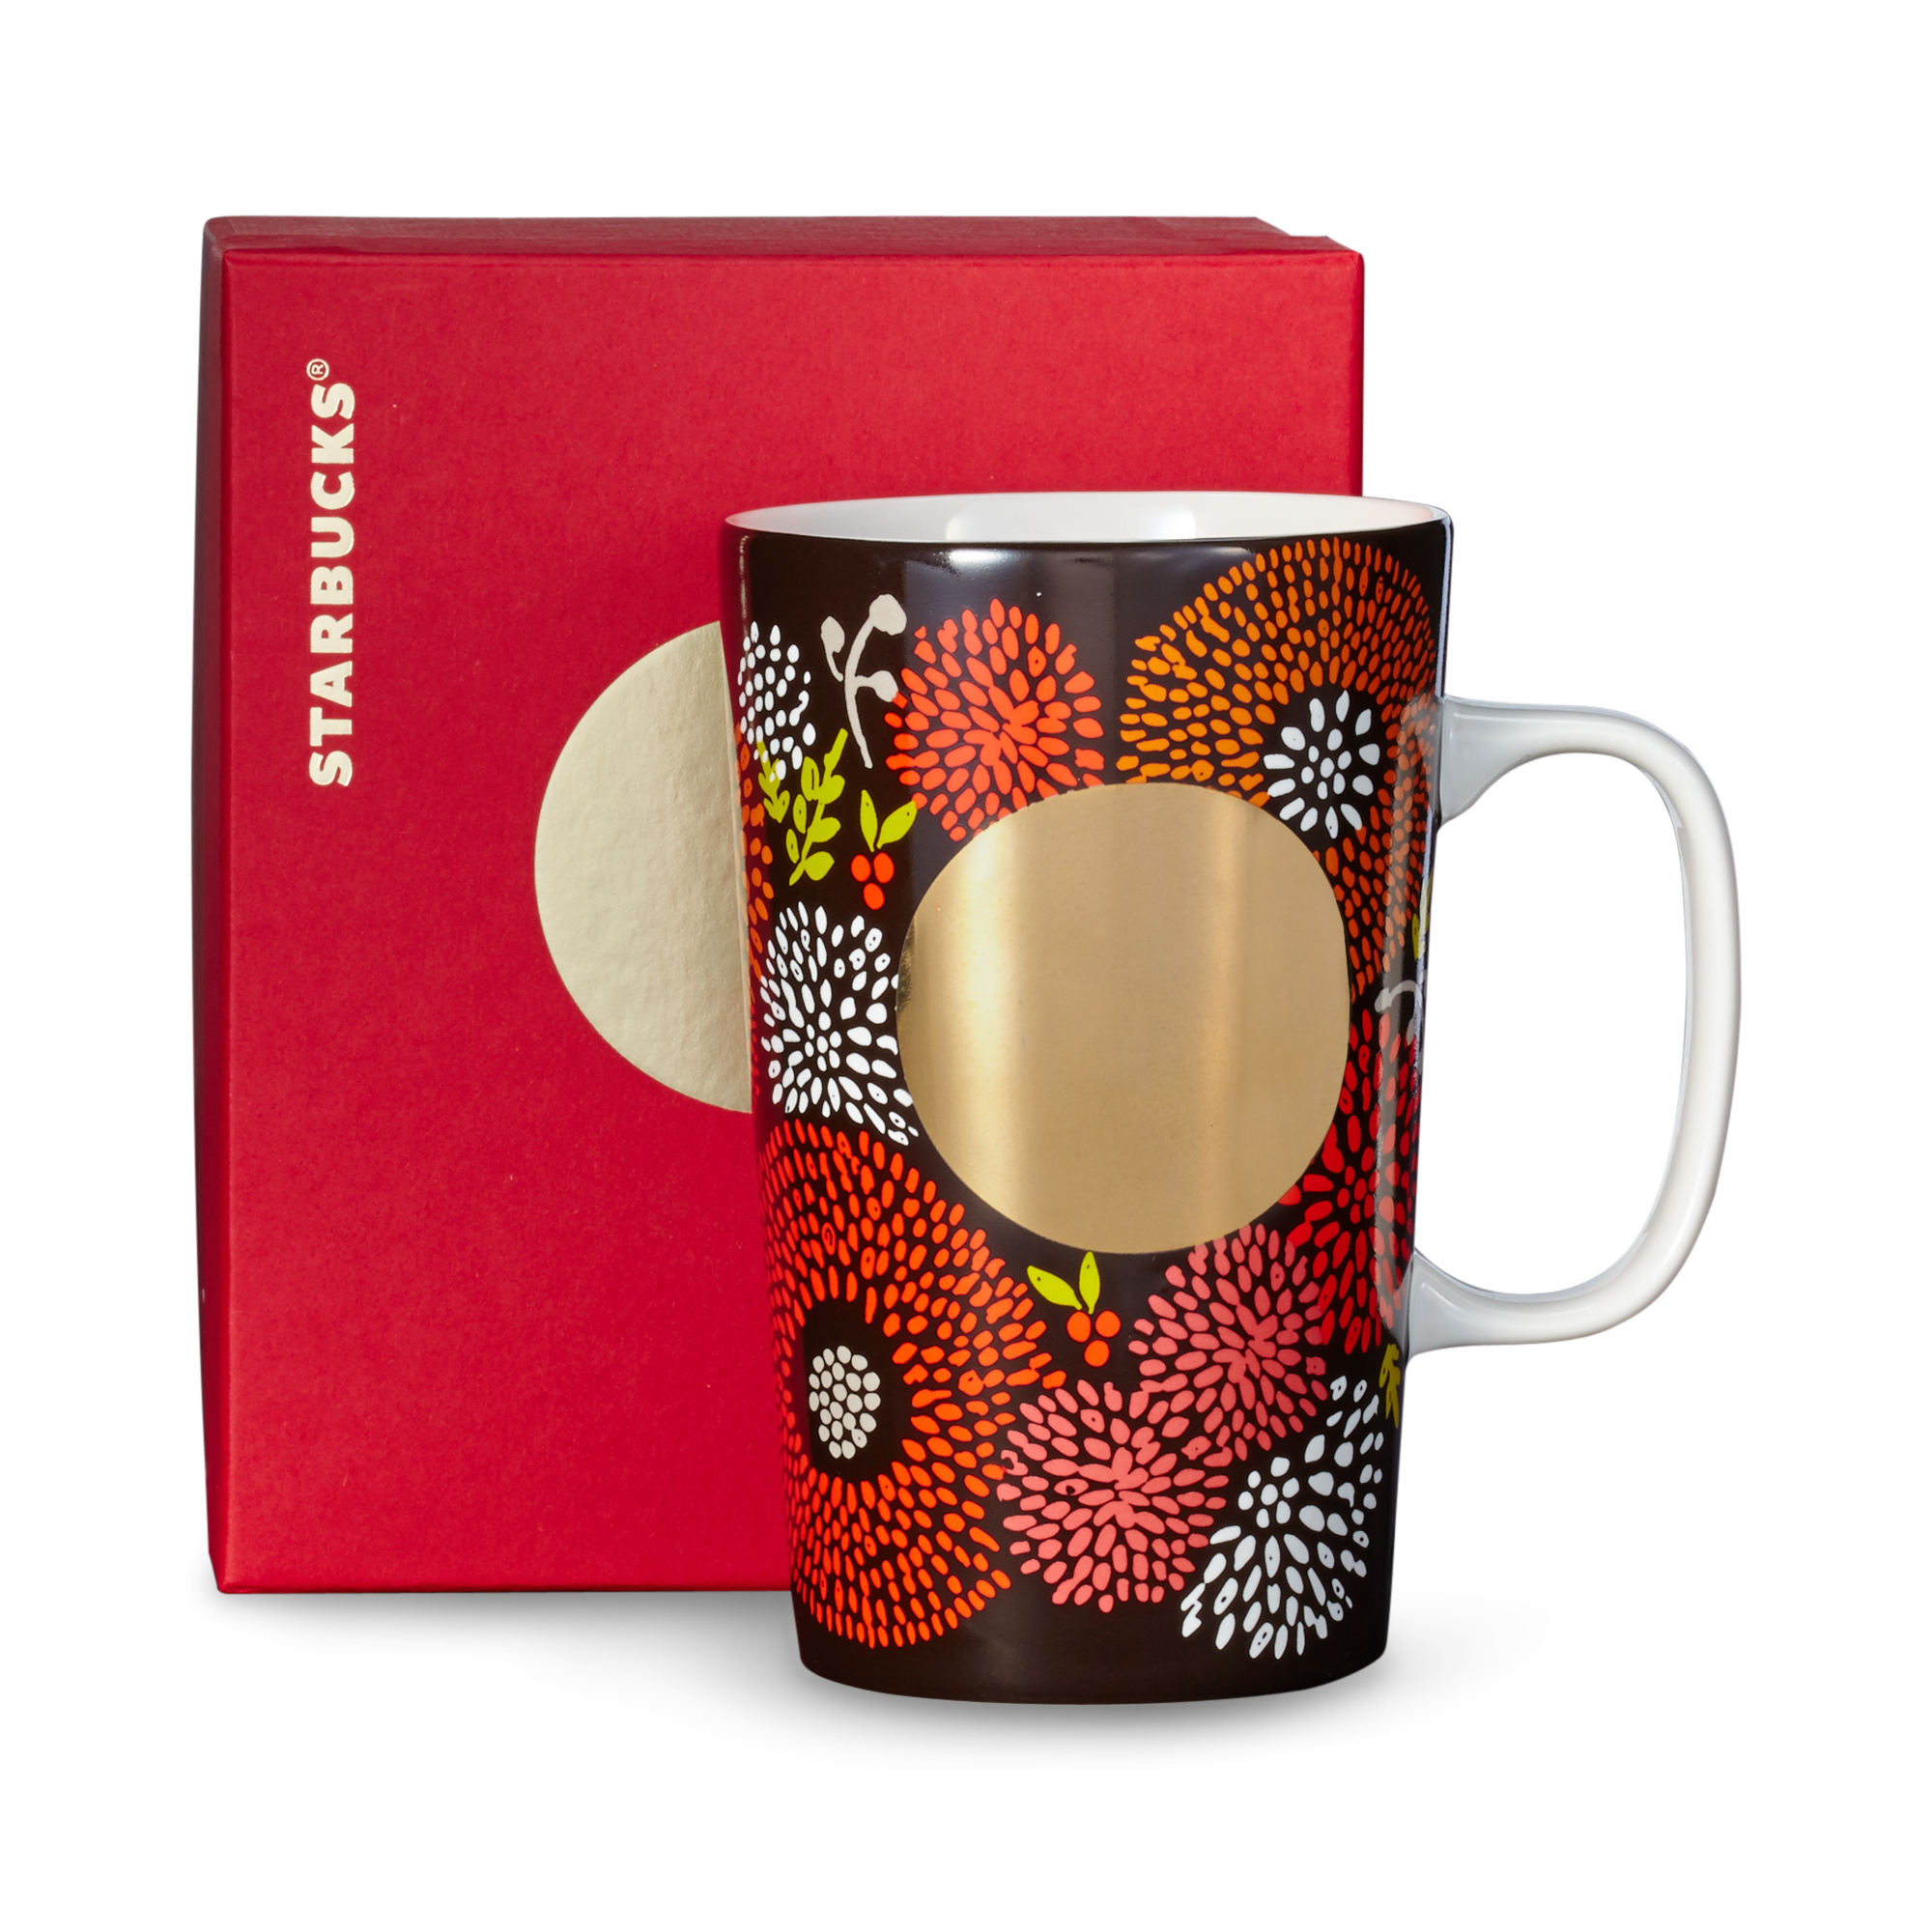 Starbucks Mug - Brown Floral, 16 fl oz